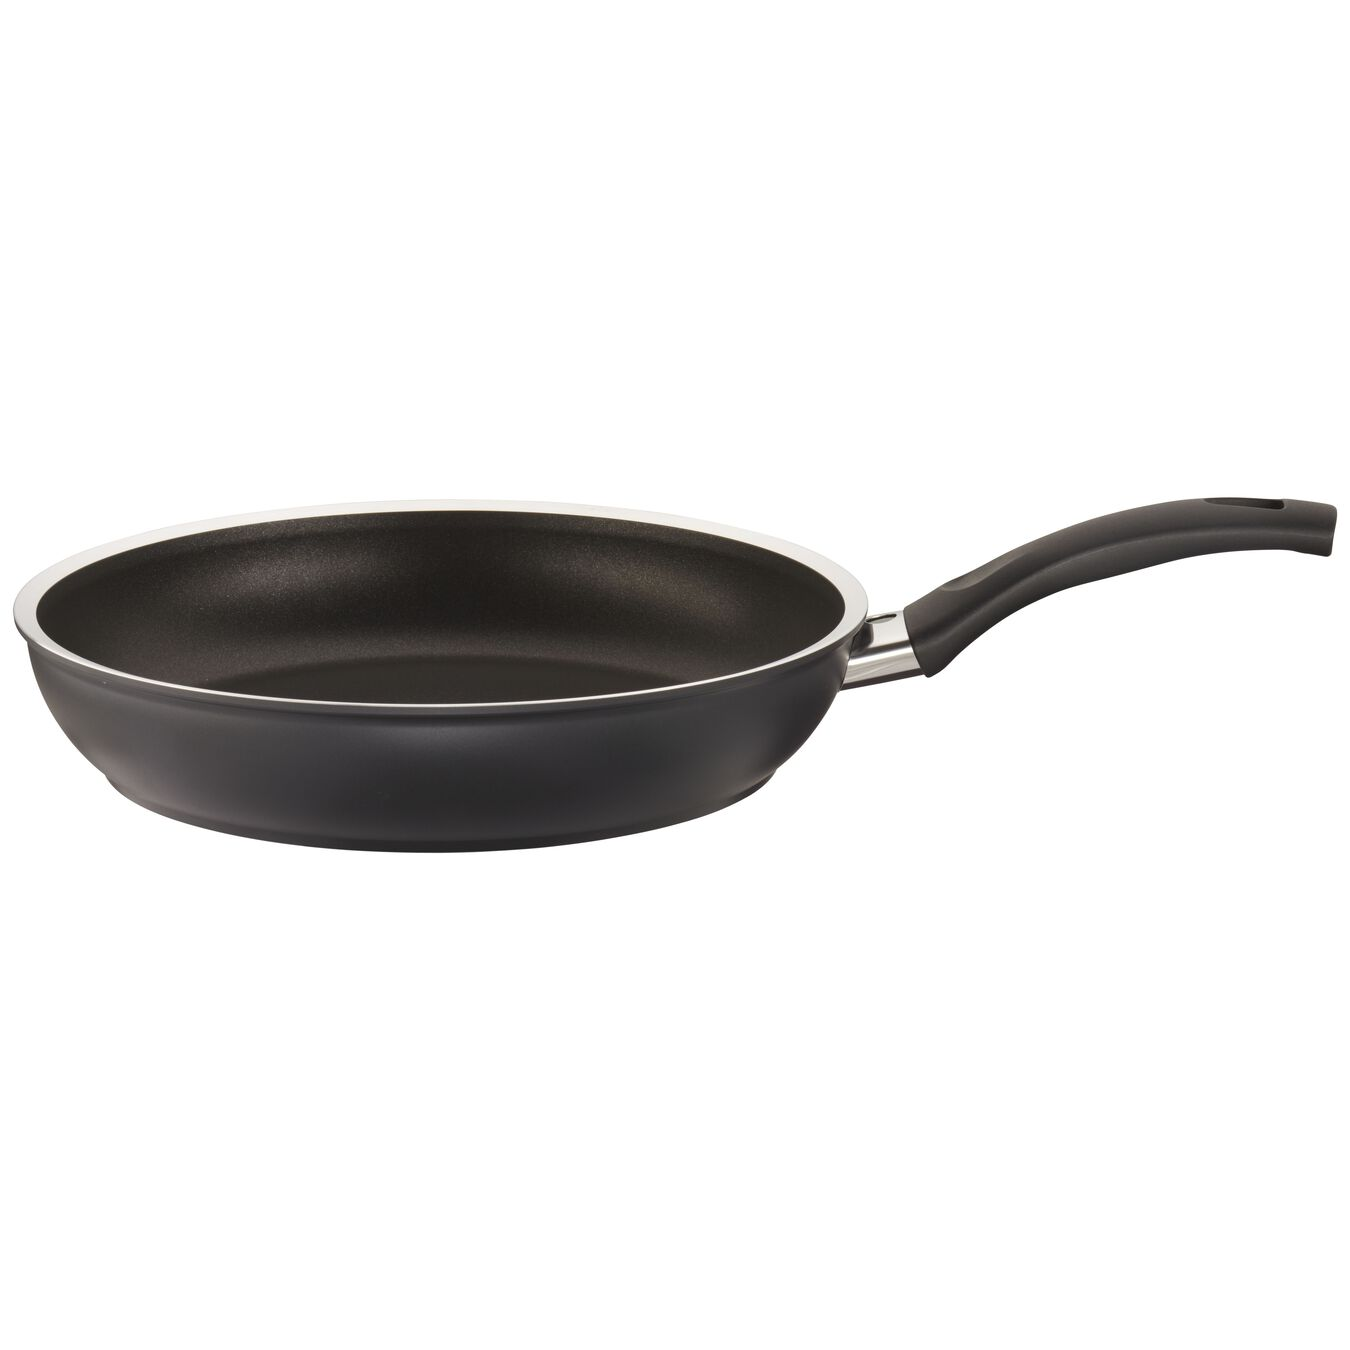 12-inch Nonstick Fry Pan,,large 3